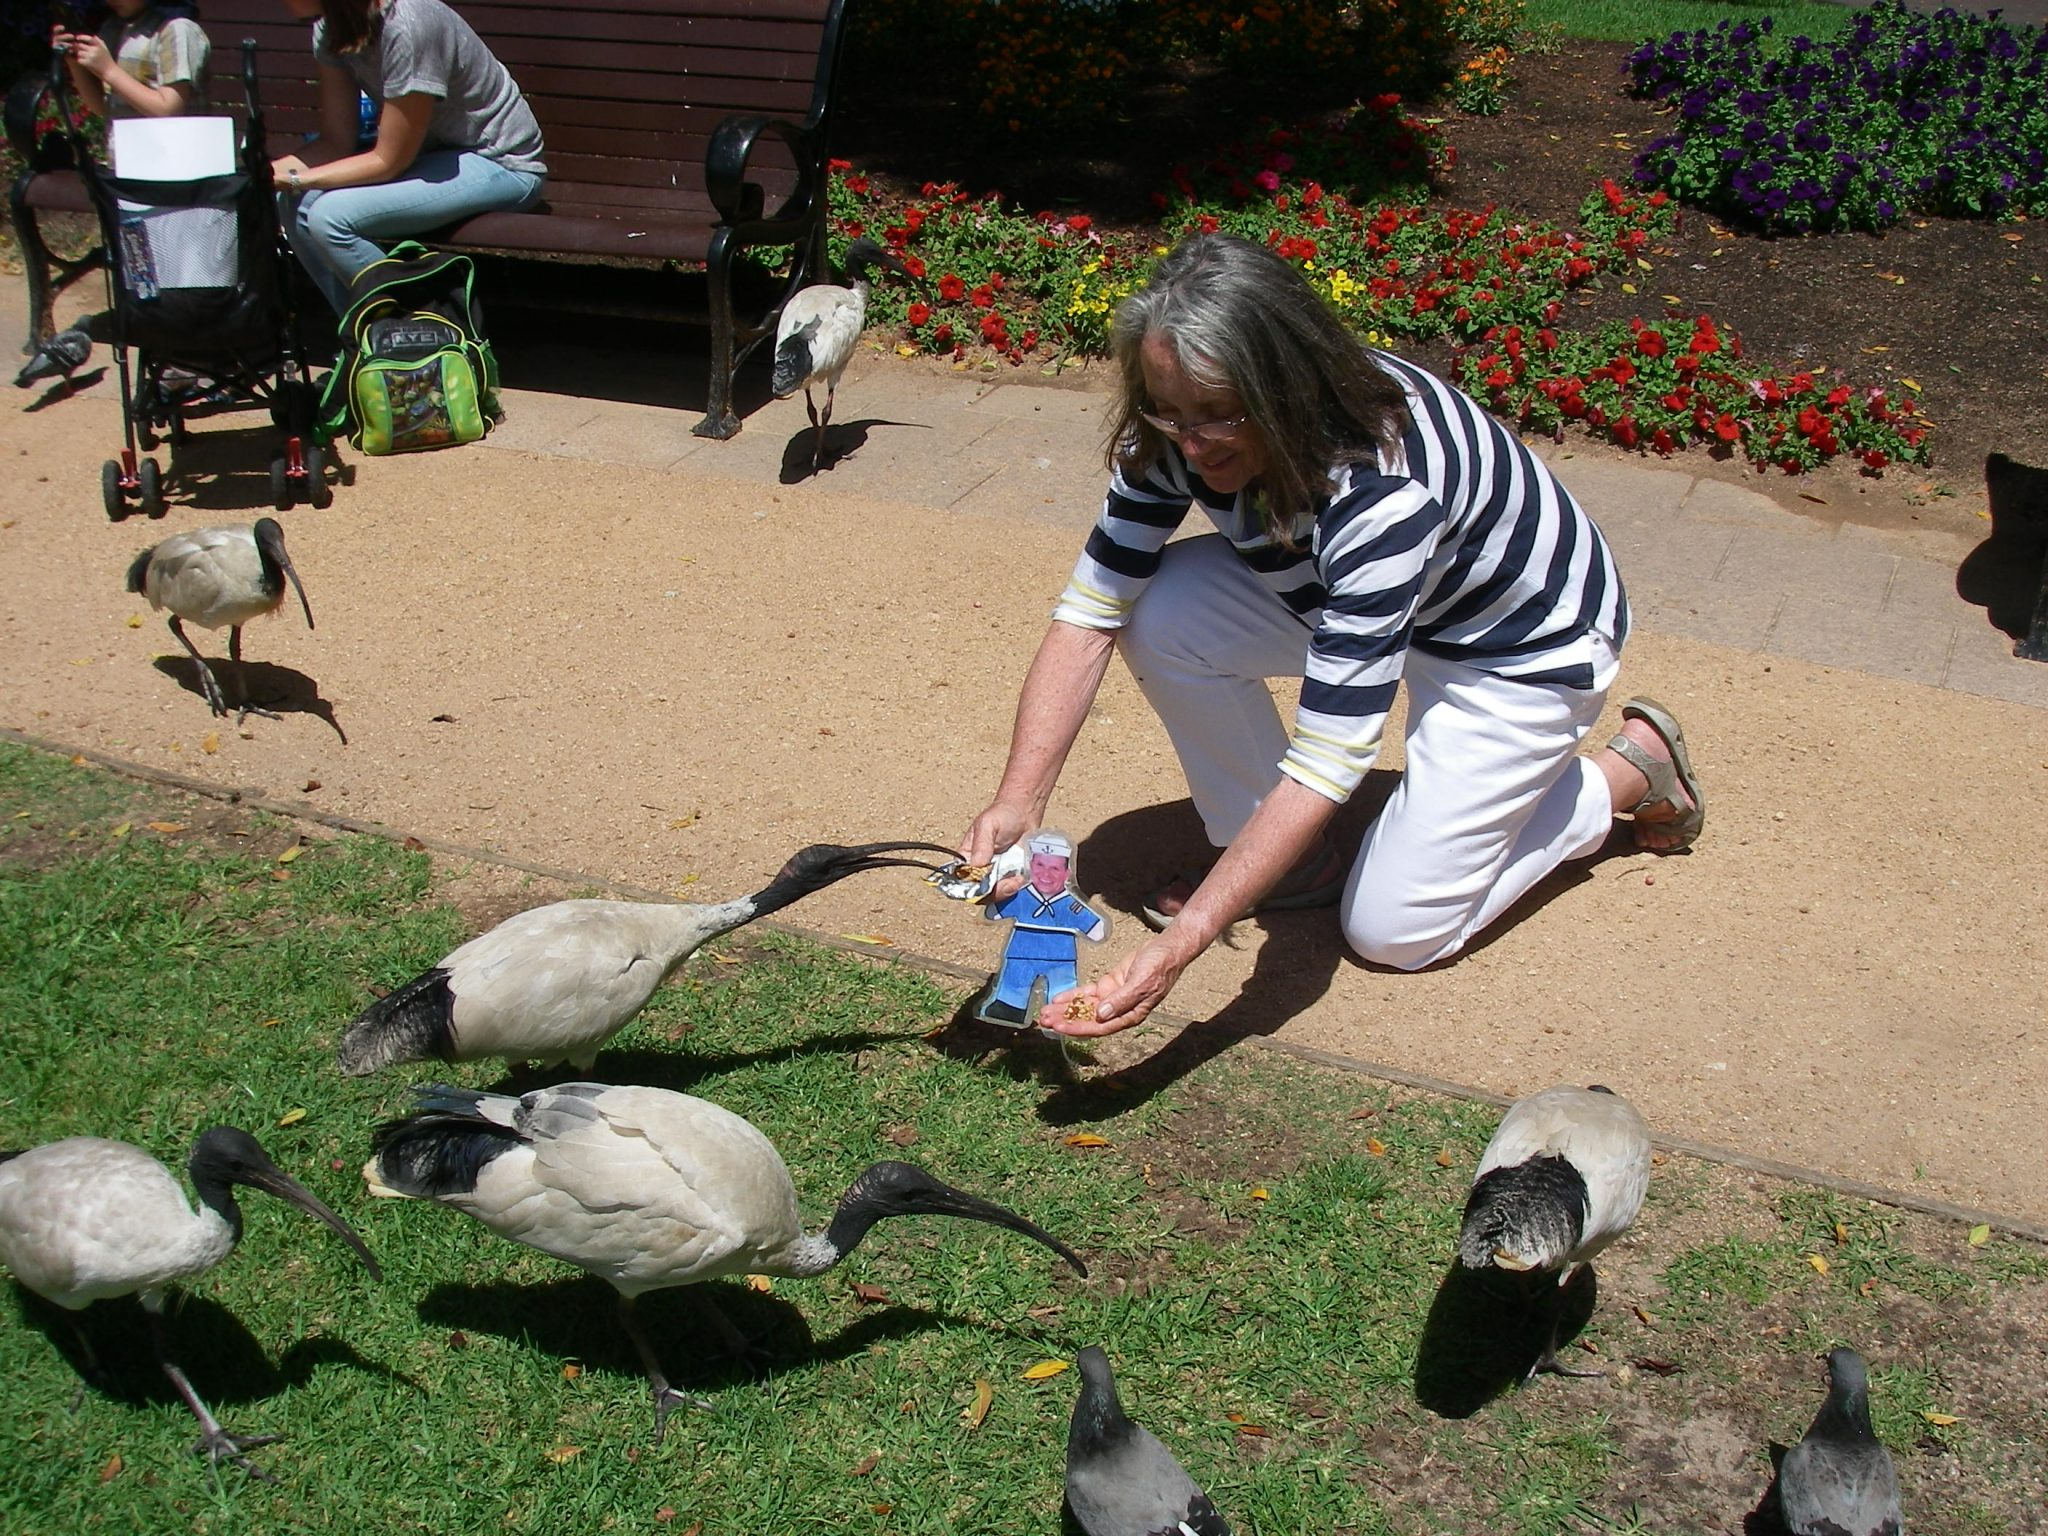 51.1. Birds - Flat Mr. Davis and Anne feed a granola bar to some wild ibis birds in Sydney, Australia